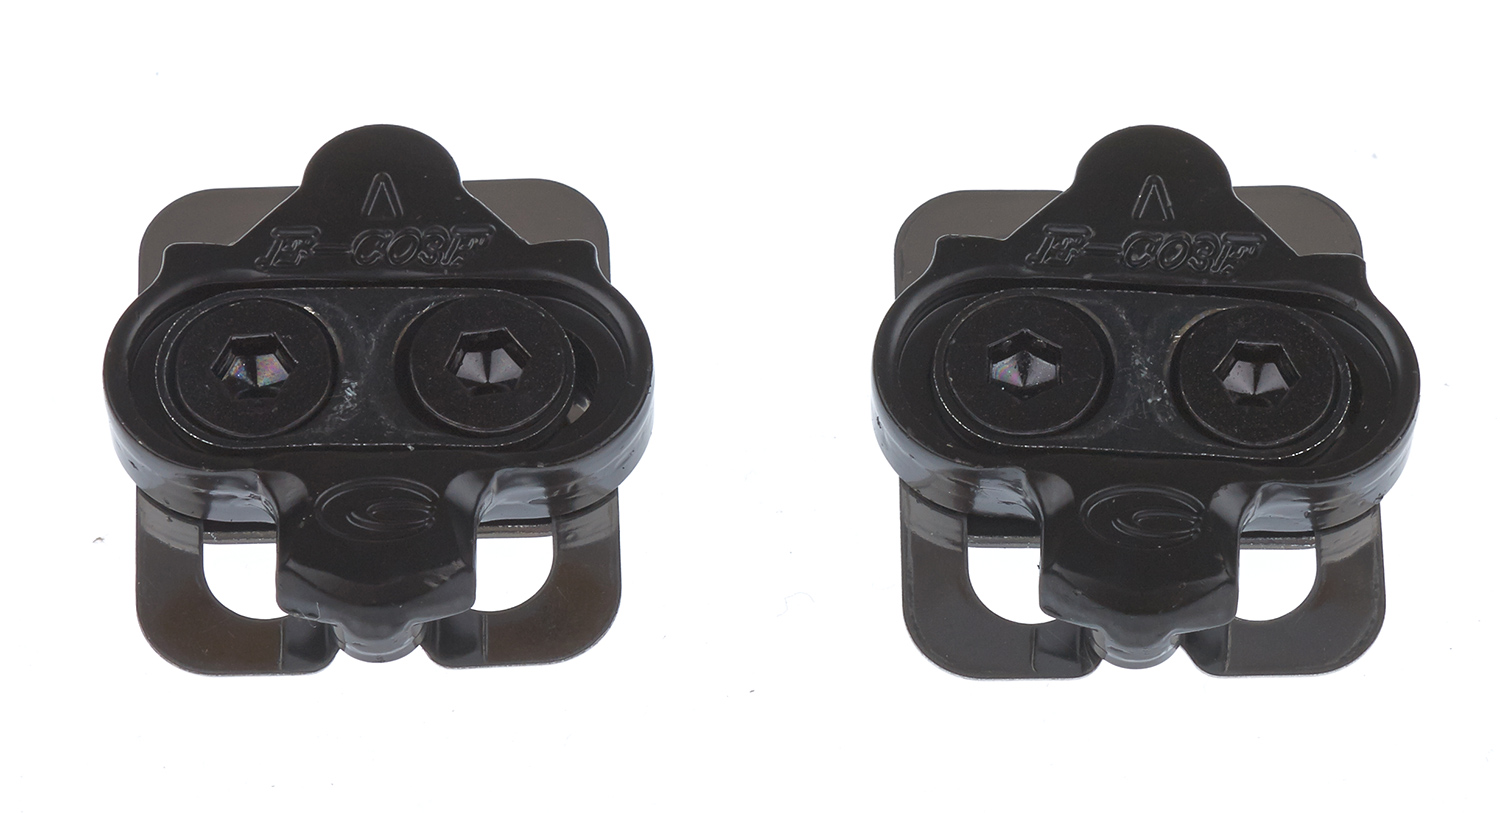 Klamper Exustar New SPD Multi Release | Pedal cleats